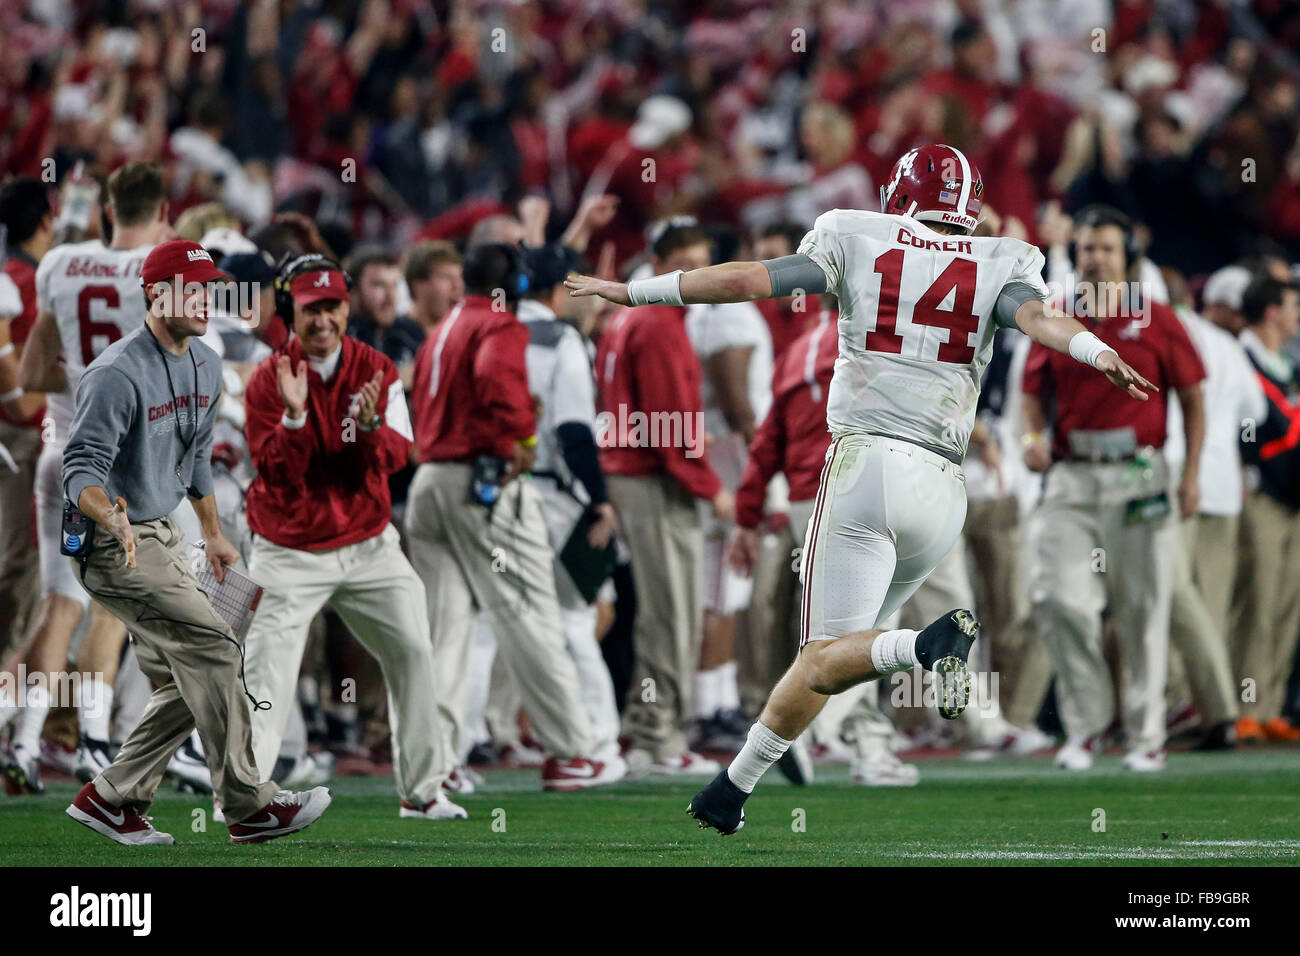 Pictures Of The Alabama Football Dynasty: 2009-2016 - CraveOnline